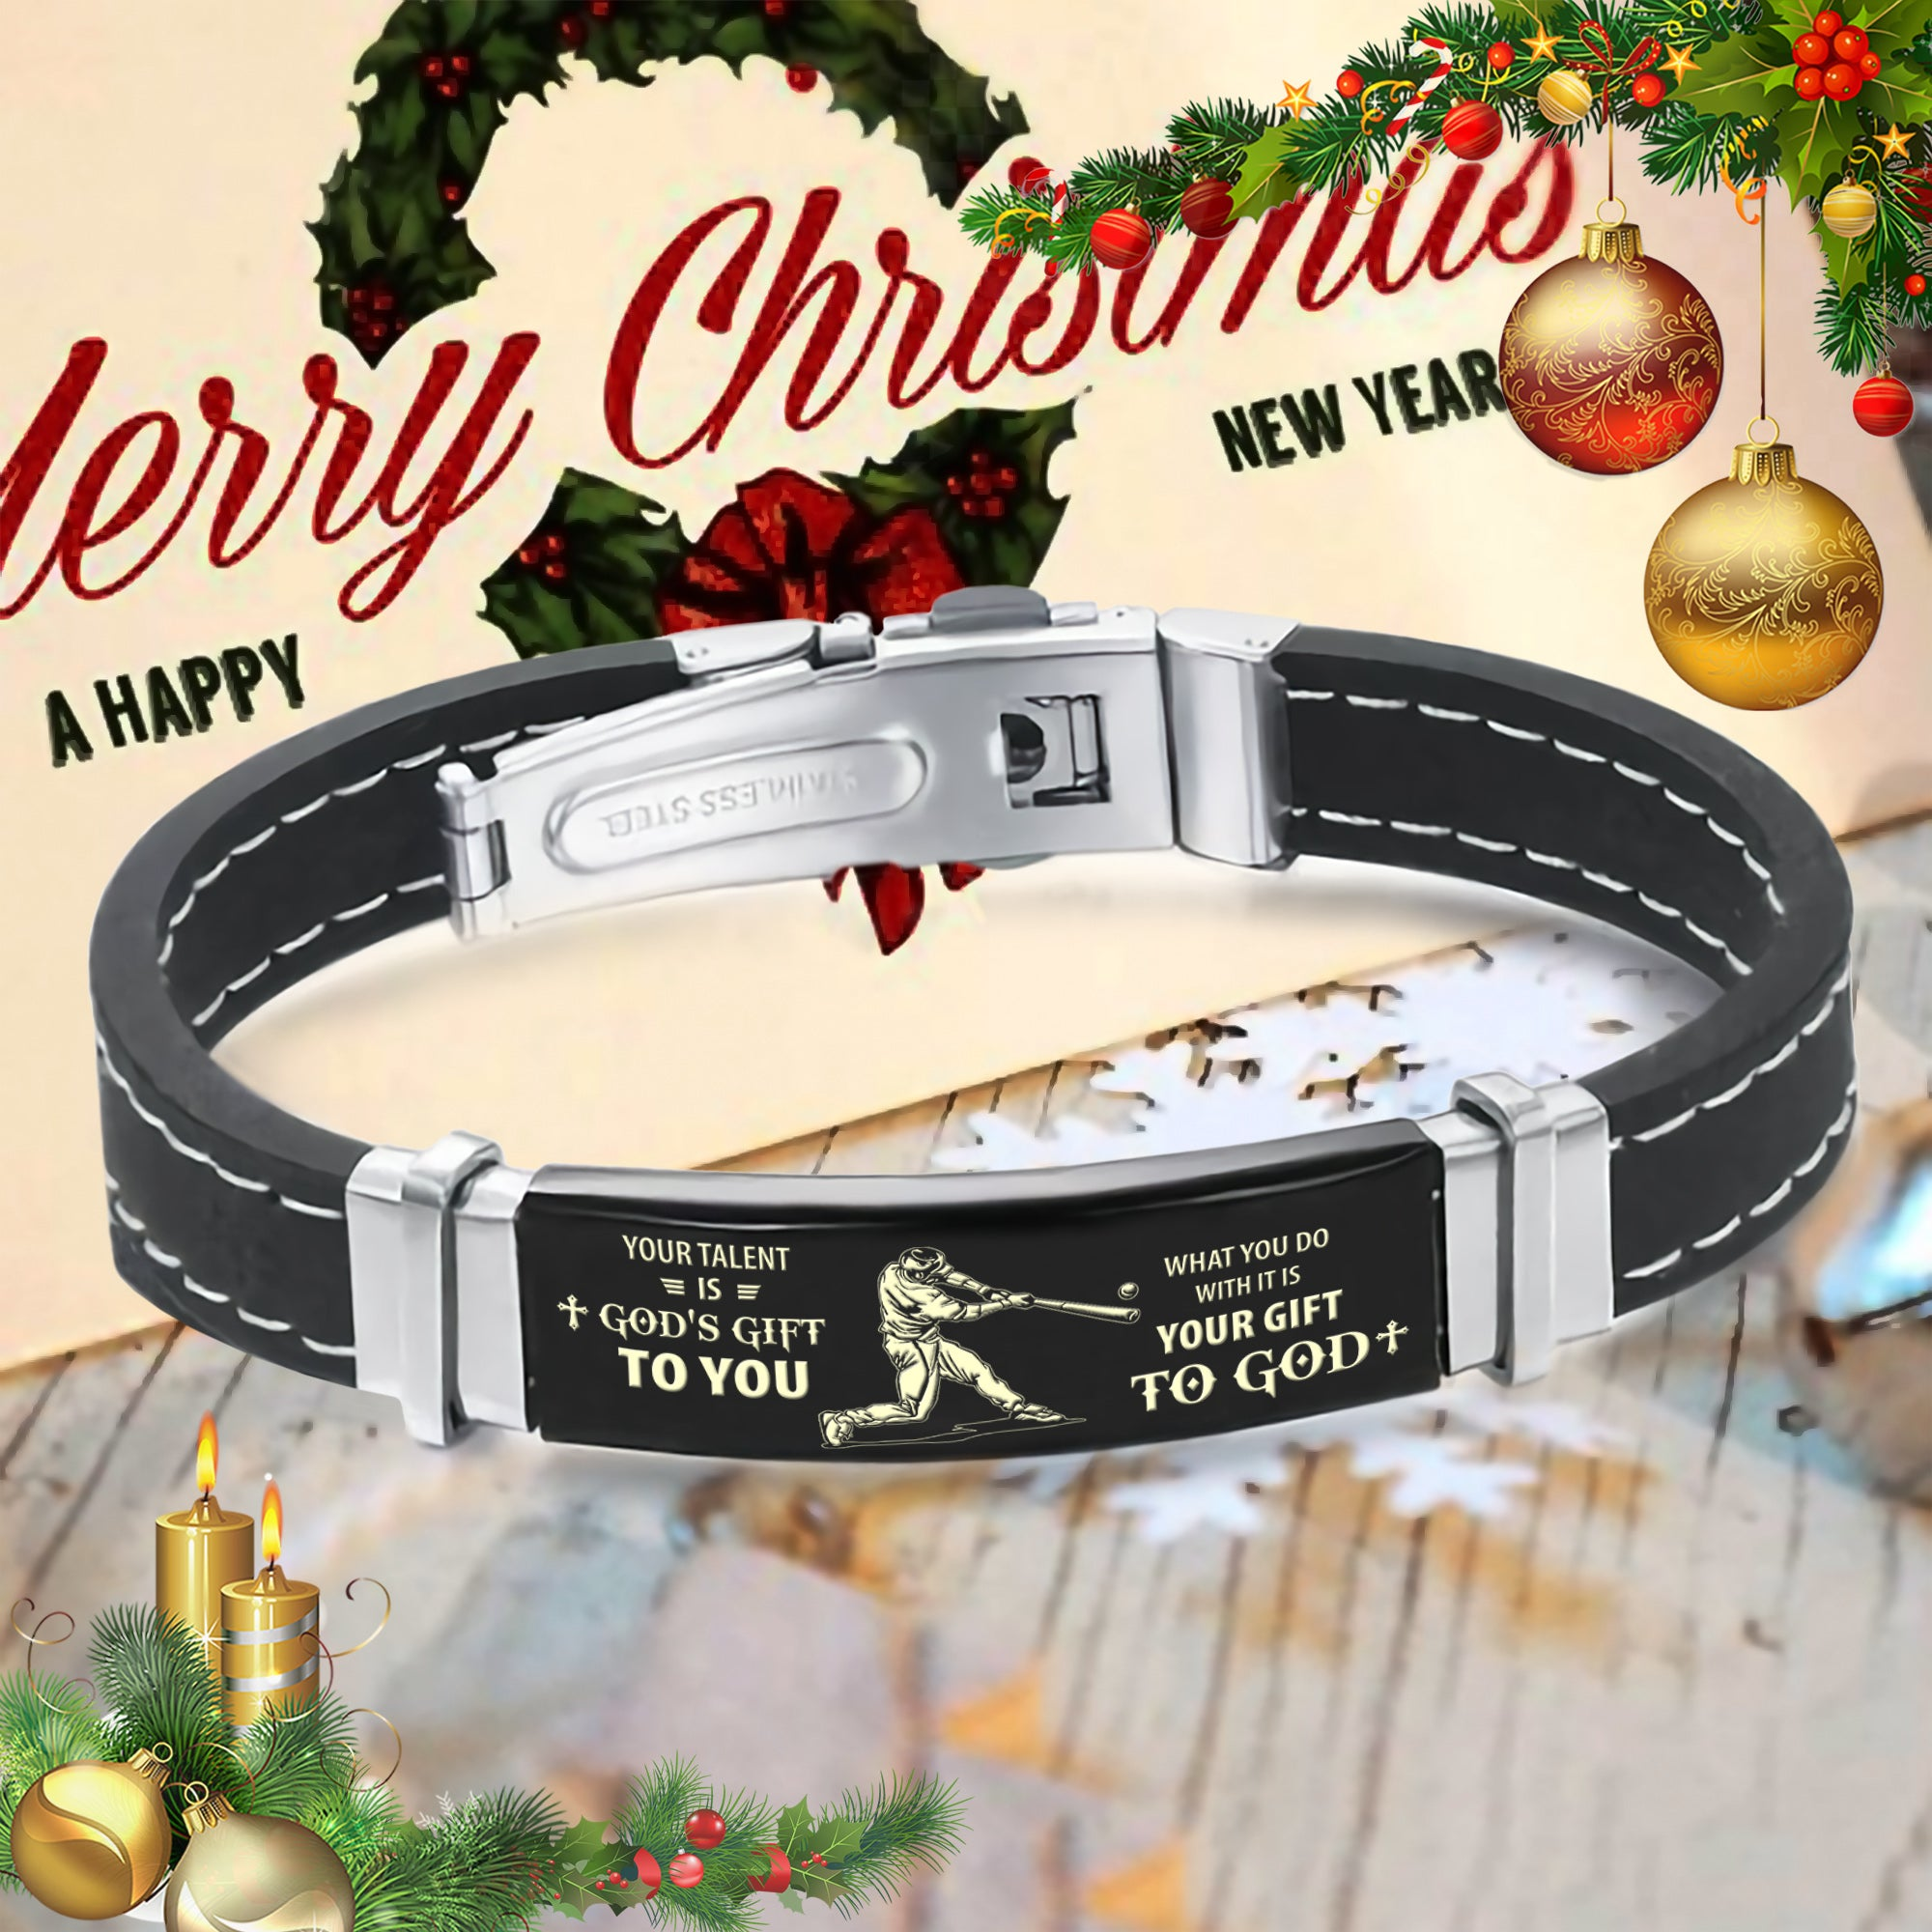 (LP313) CUSTOMIZABLE BASEBALL Silicone and Stainless Steel bracelet - YOUR TALENT IS GOD'S GIFT